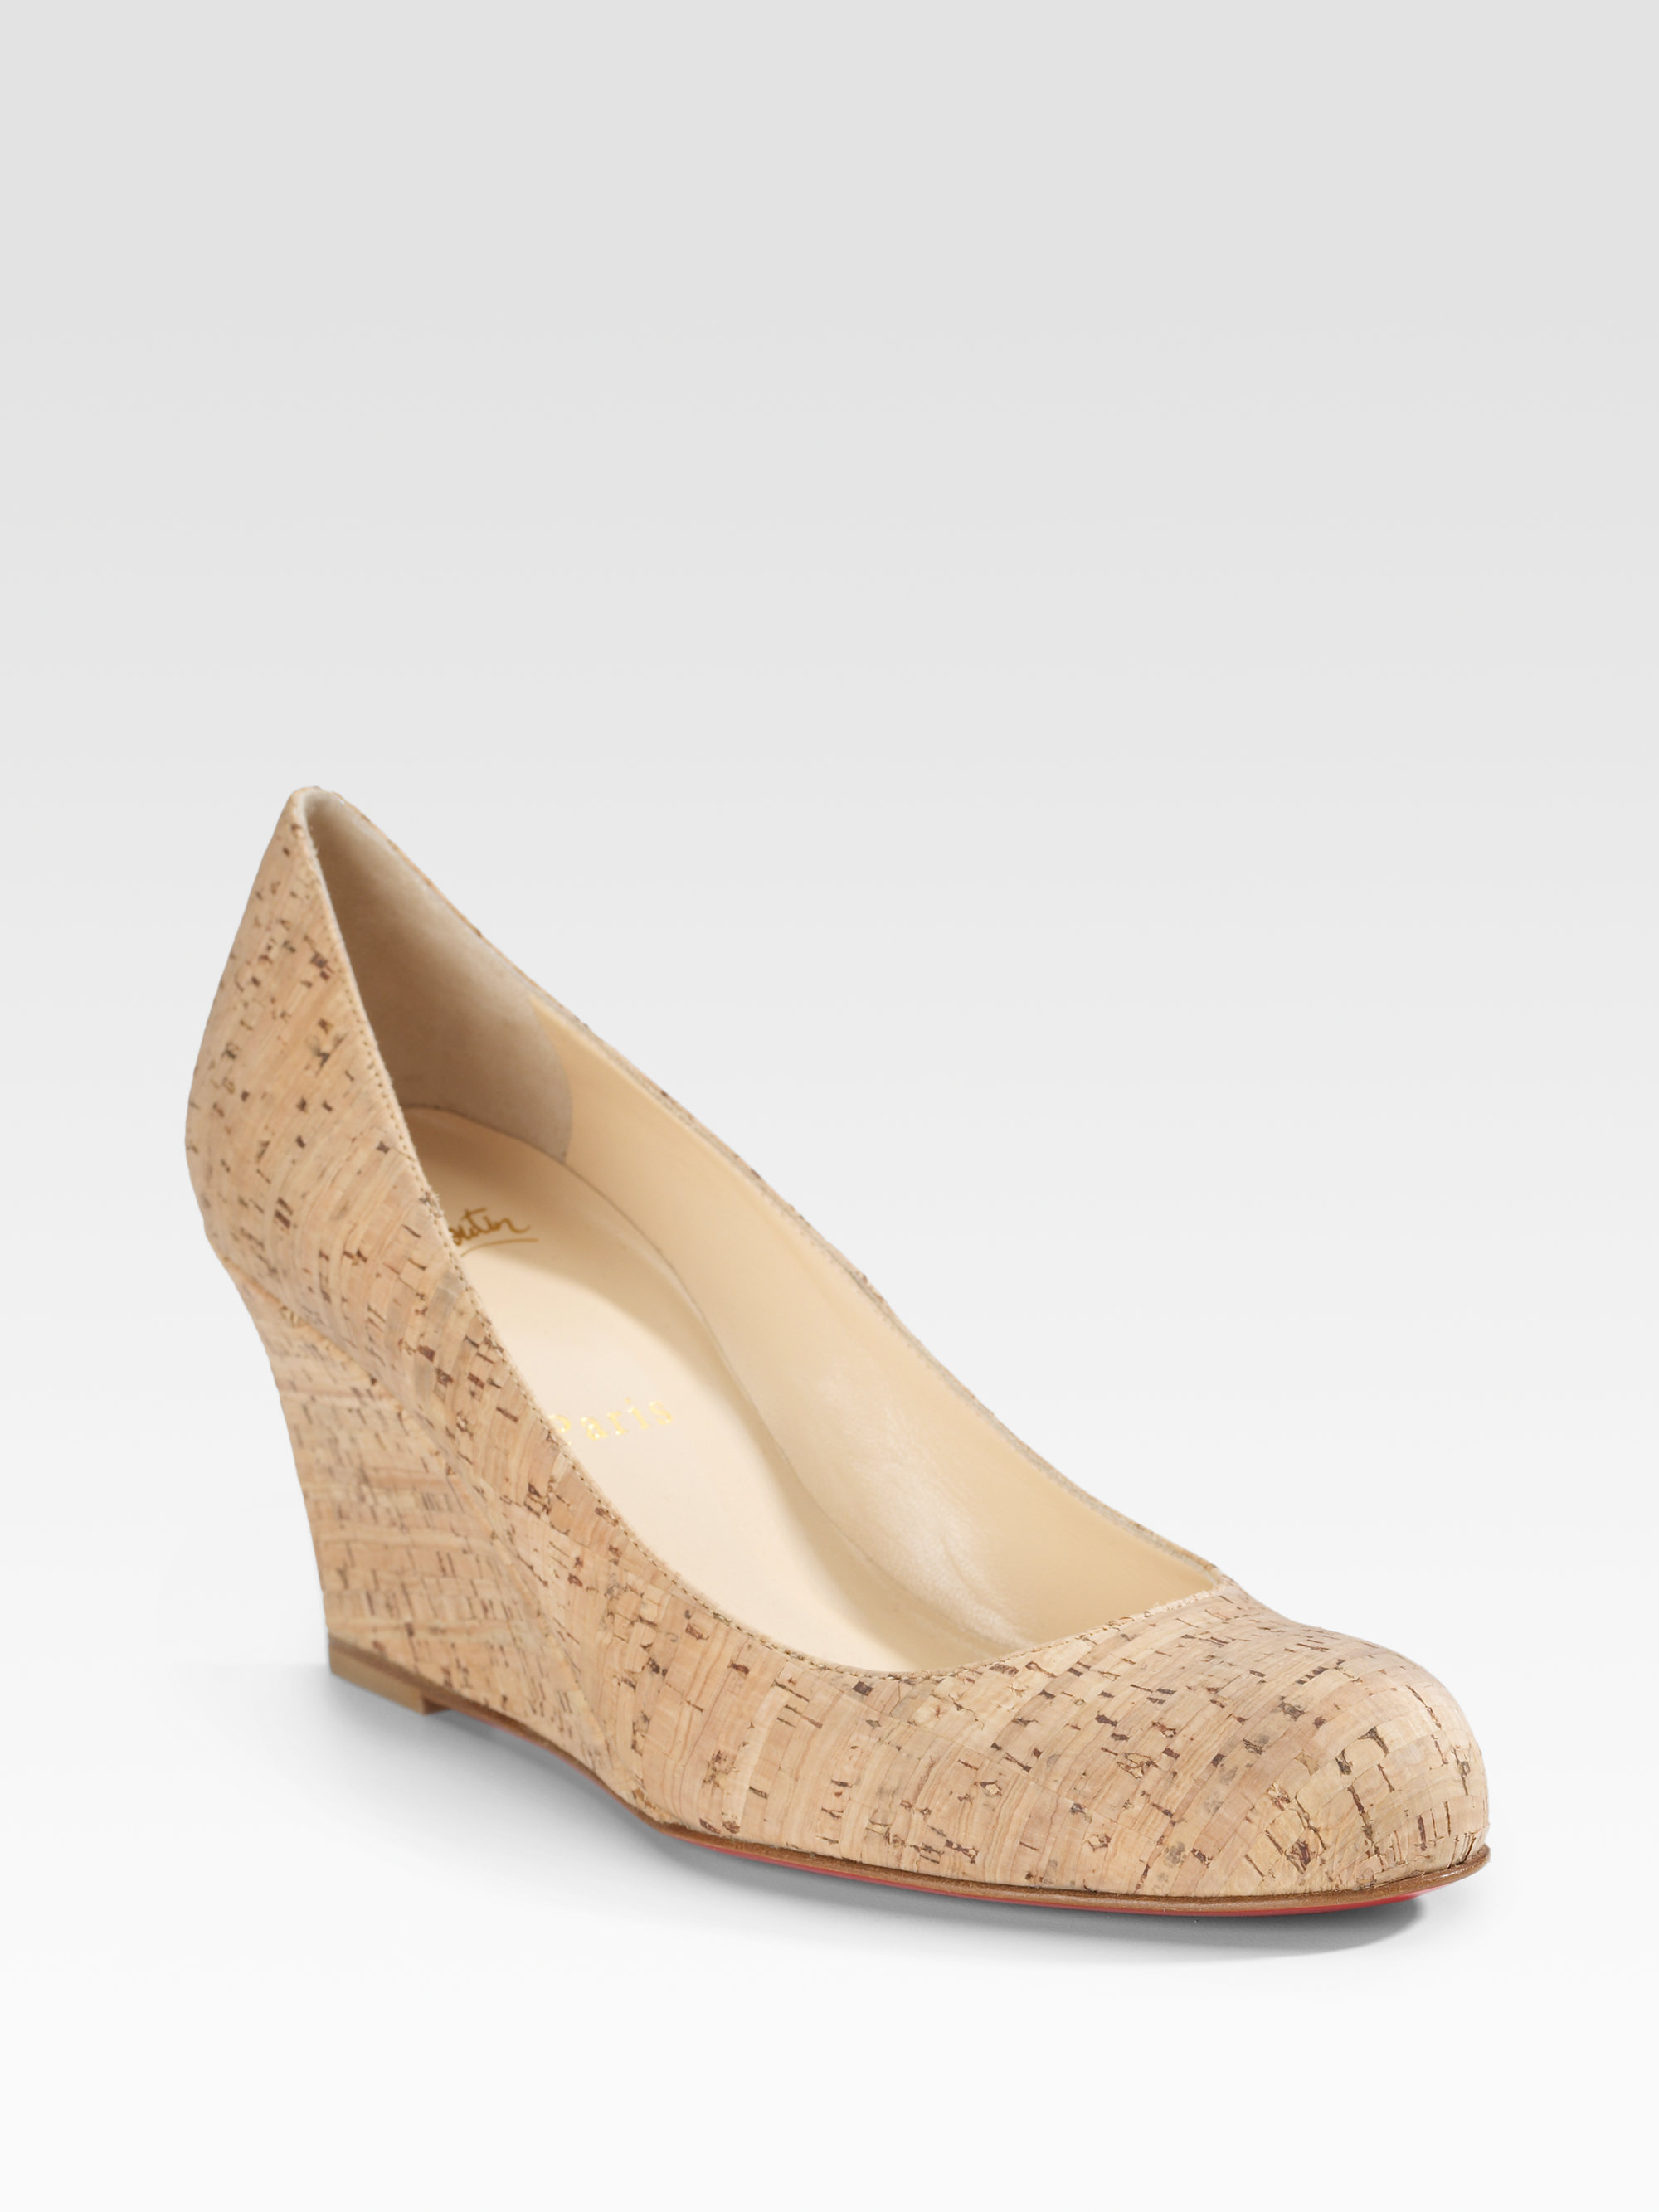 Christian Louboutin Round-Toe Cork Wedges buy cheap pick a best hot sale cheap online buy cheap new arrival the cheapest sale online 8rjZ9